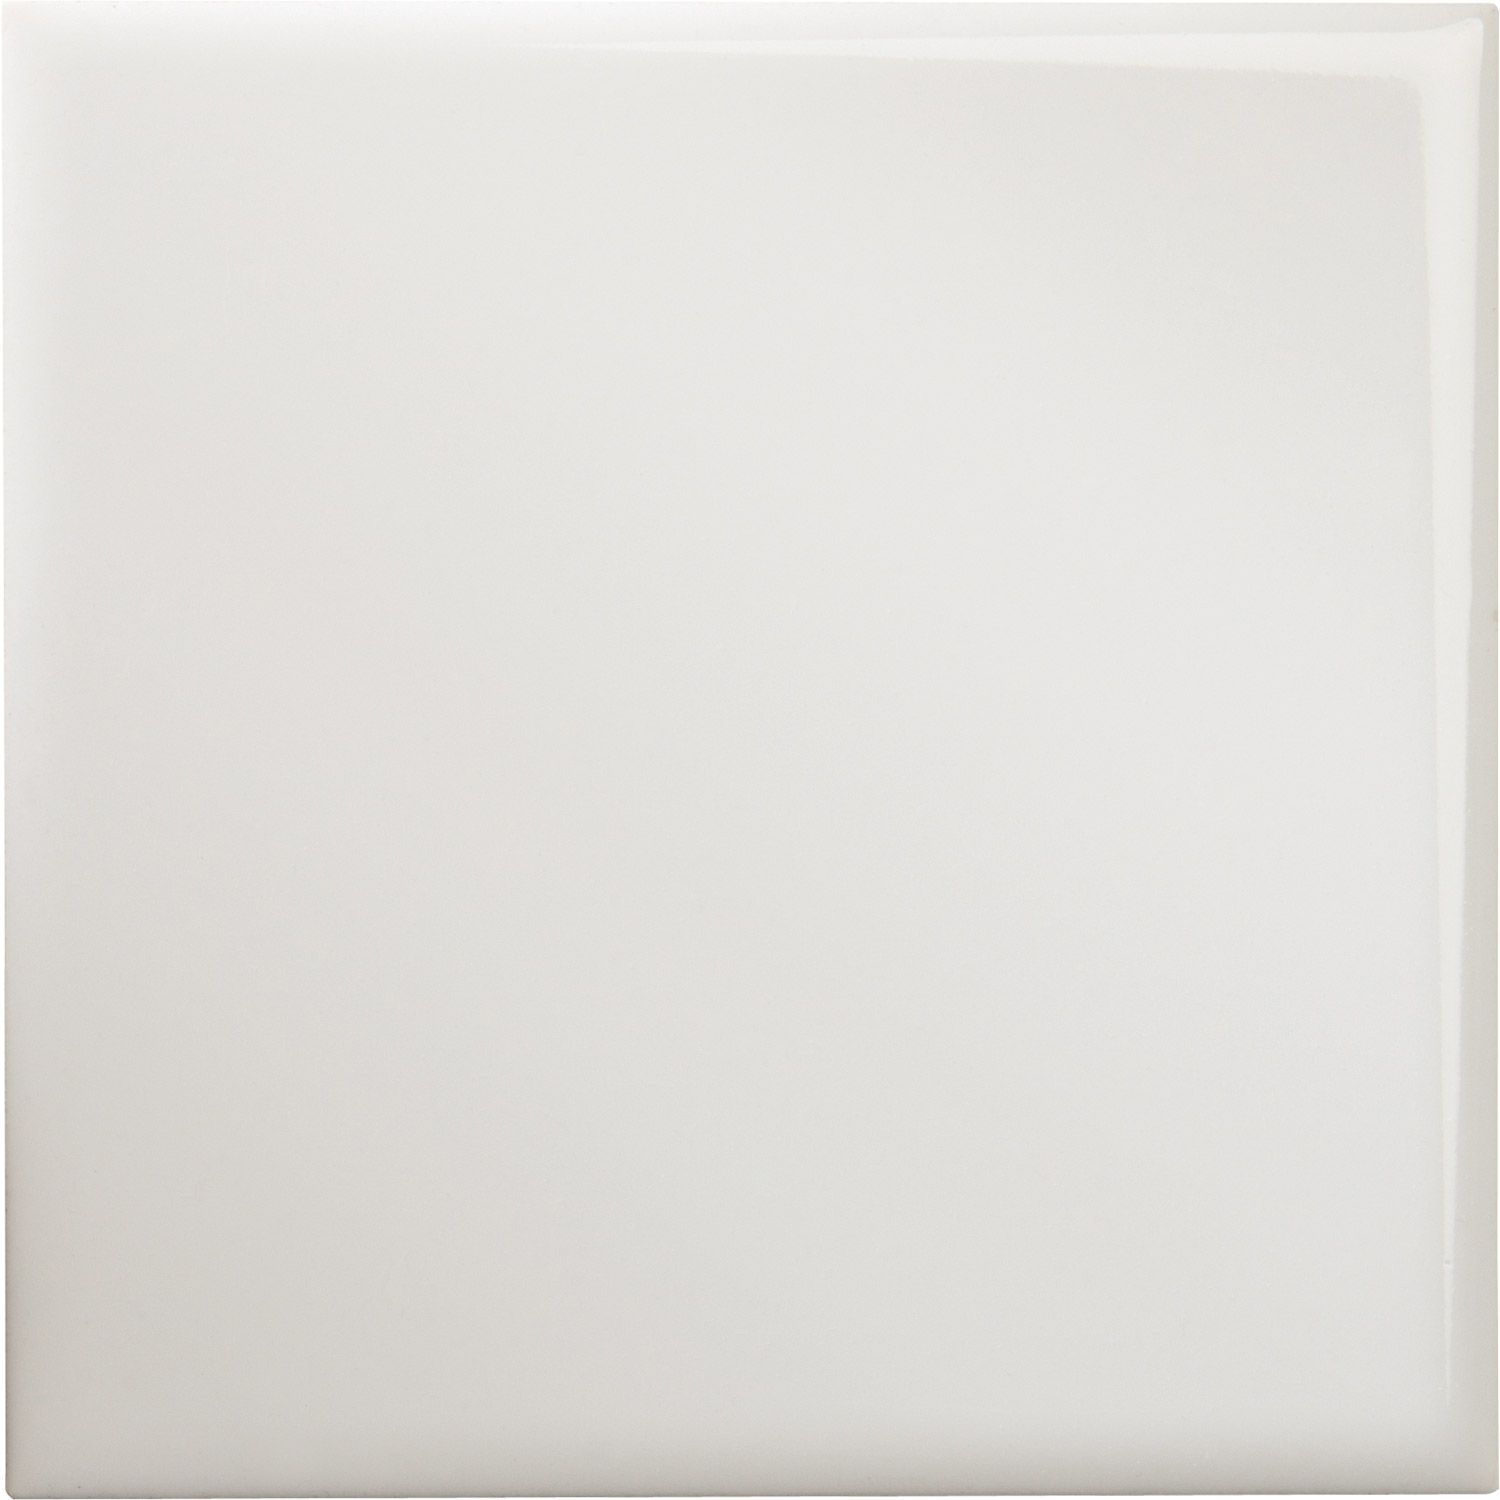 carrelage 11x11 leroy merlin p te blanche aspect On carrelage blanc 11x11